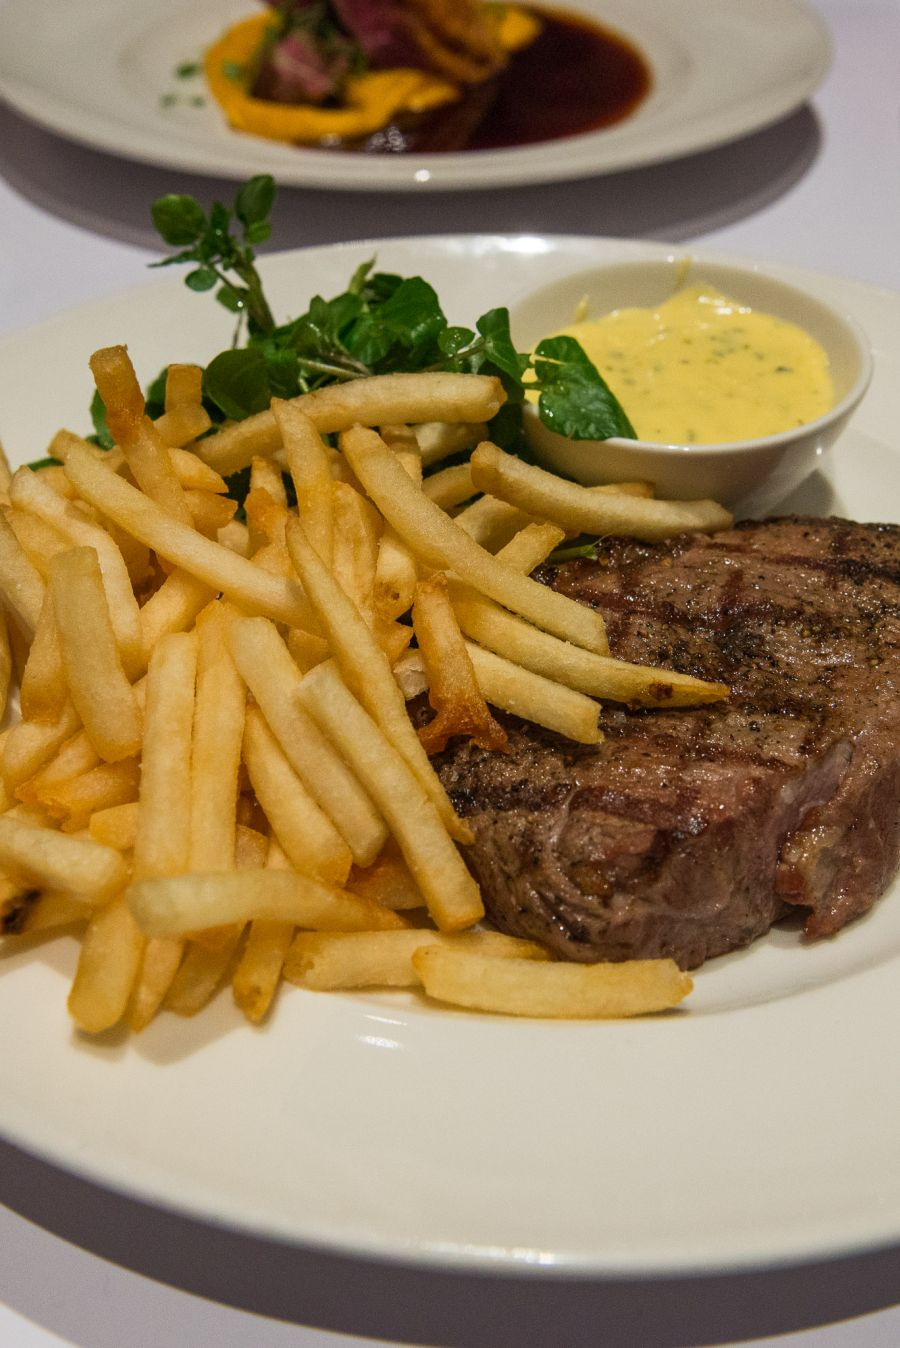 Chargrilled Butterfield sirloin steak (270g, dry aged for 28 days), bernaise sauce, frites, watercress salad (AU$46)